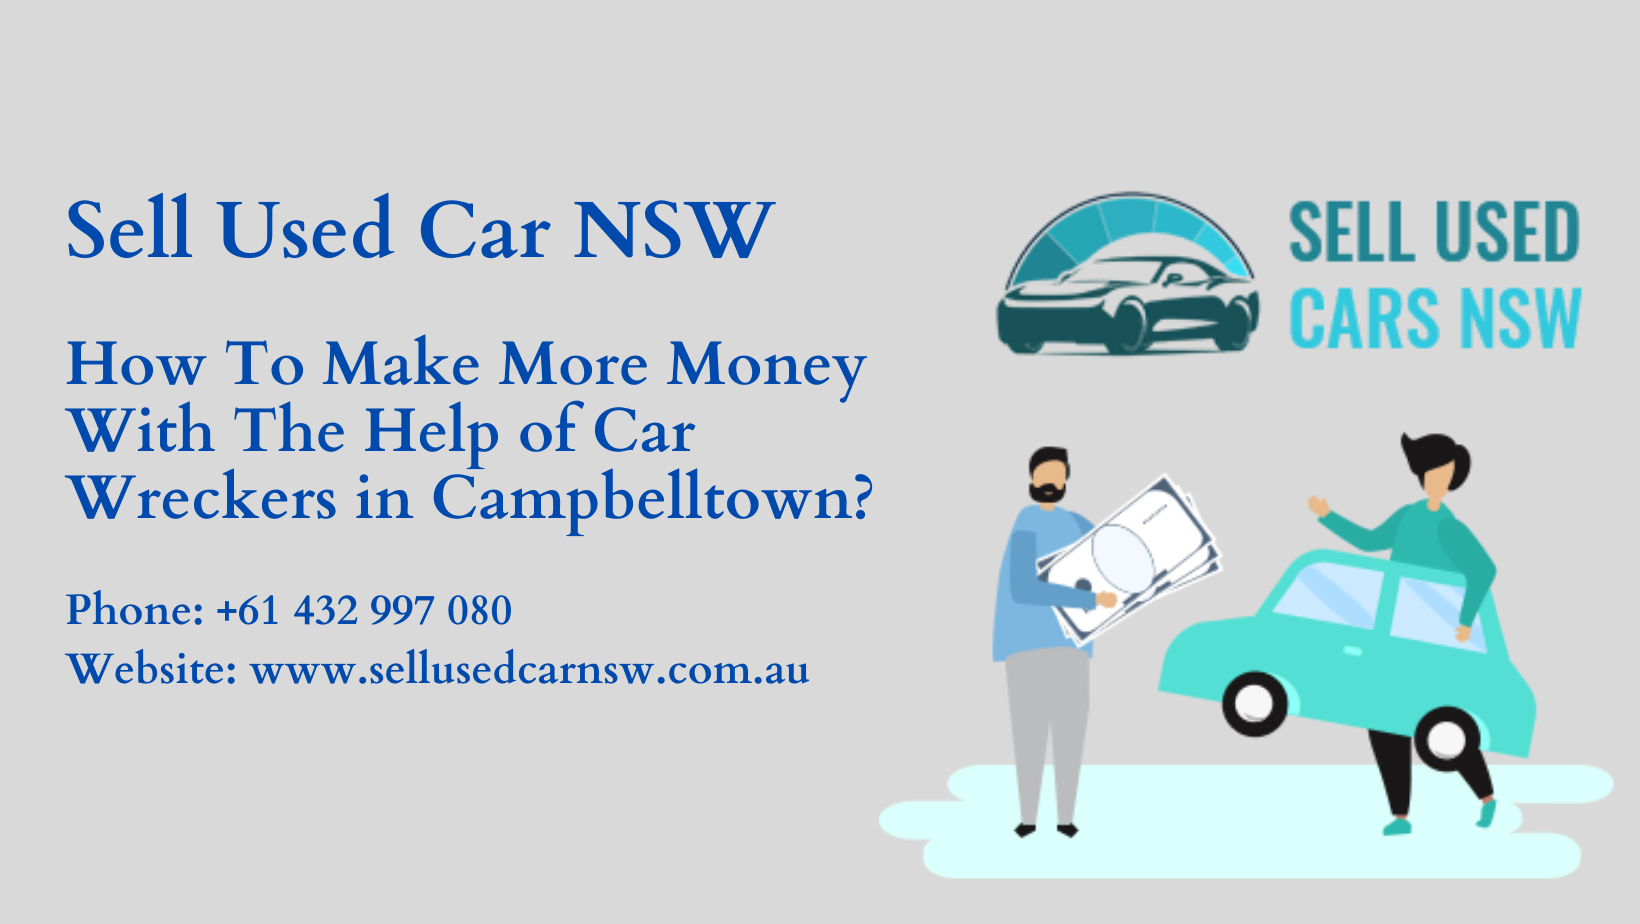 How To Make More Money With The Help of Car Wreckers in Campbelltown?